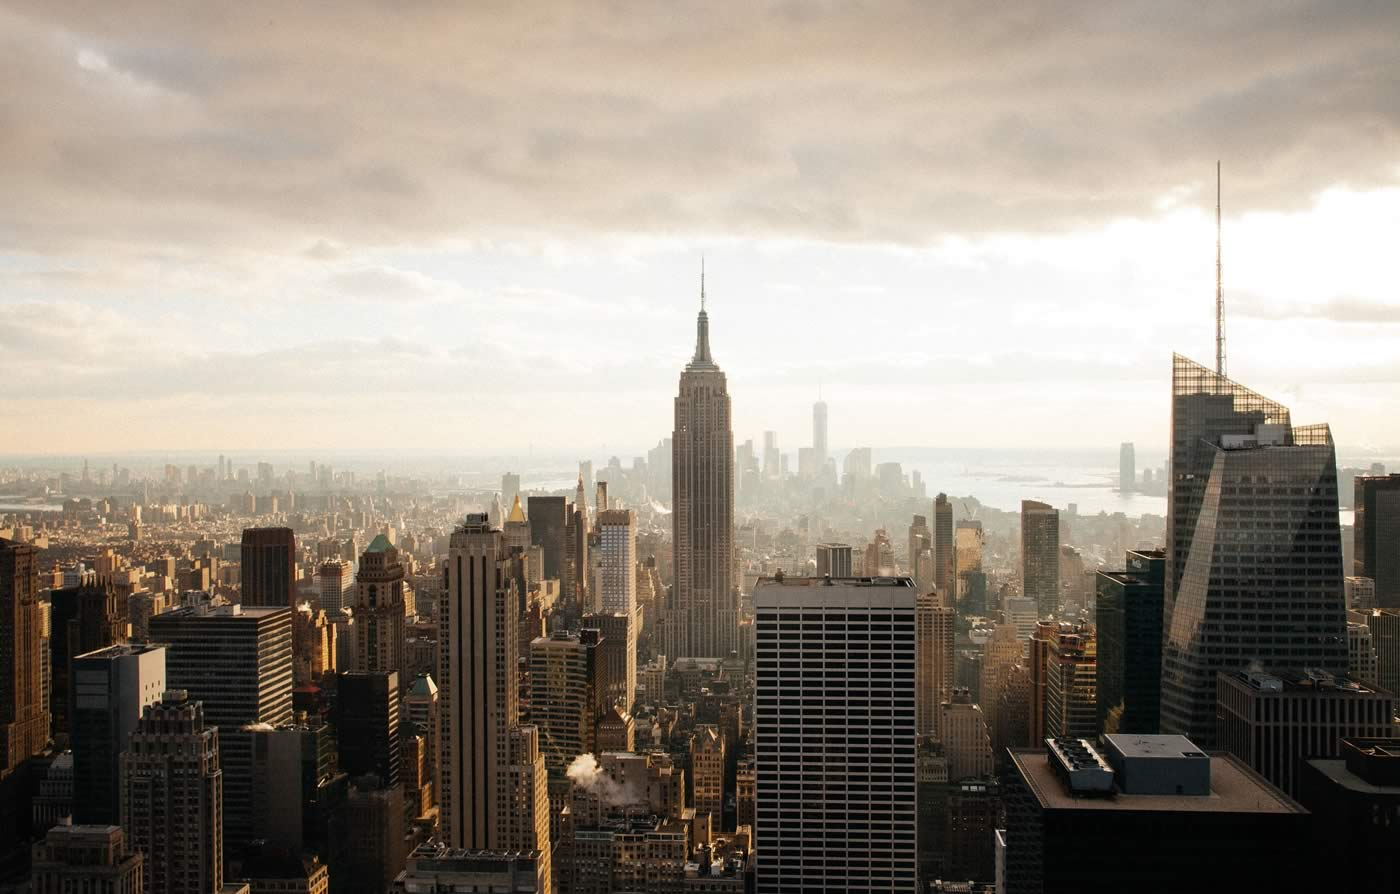 City scape of New York city